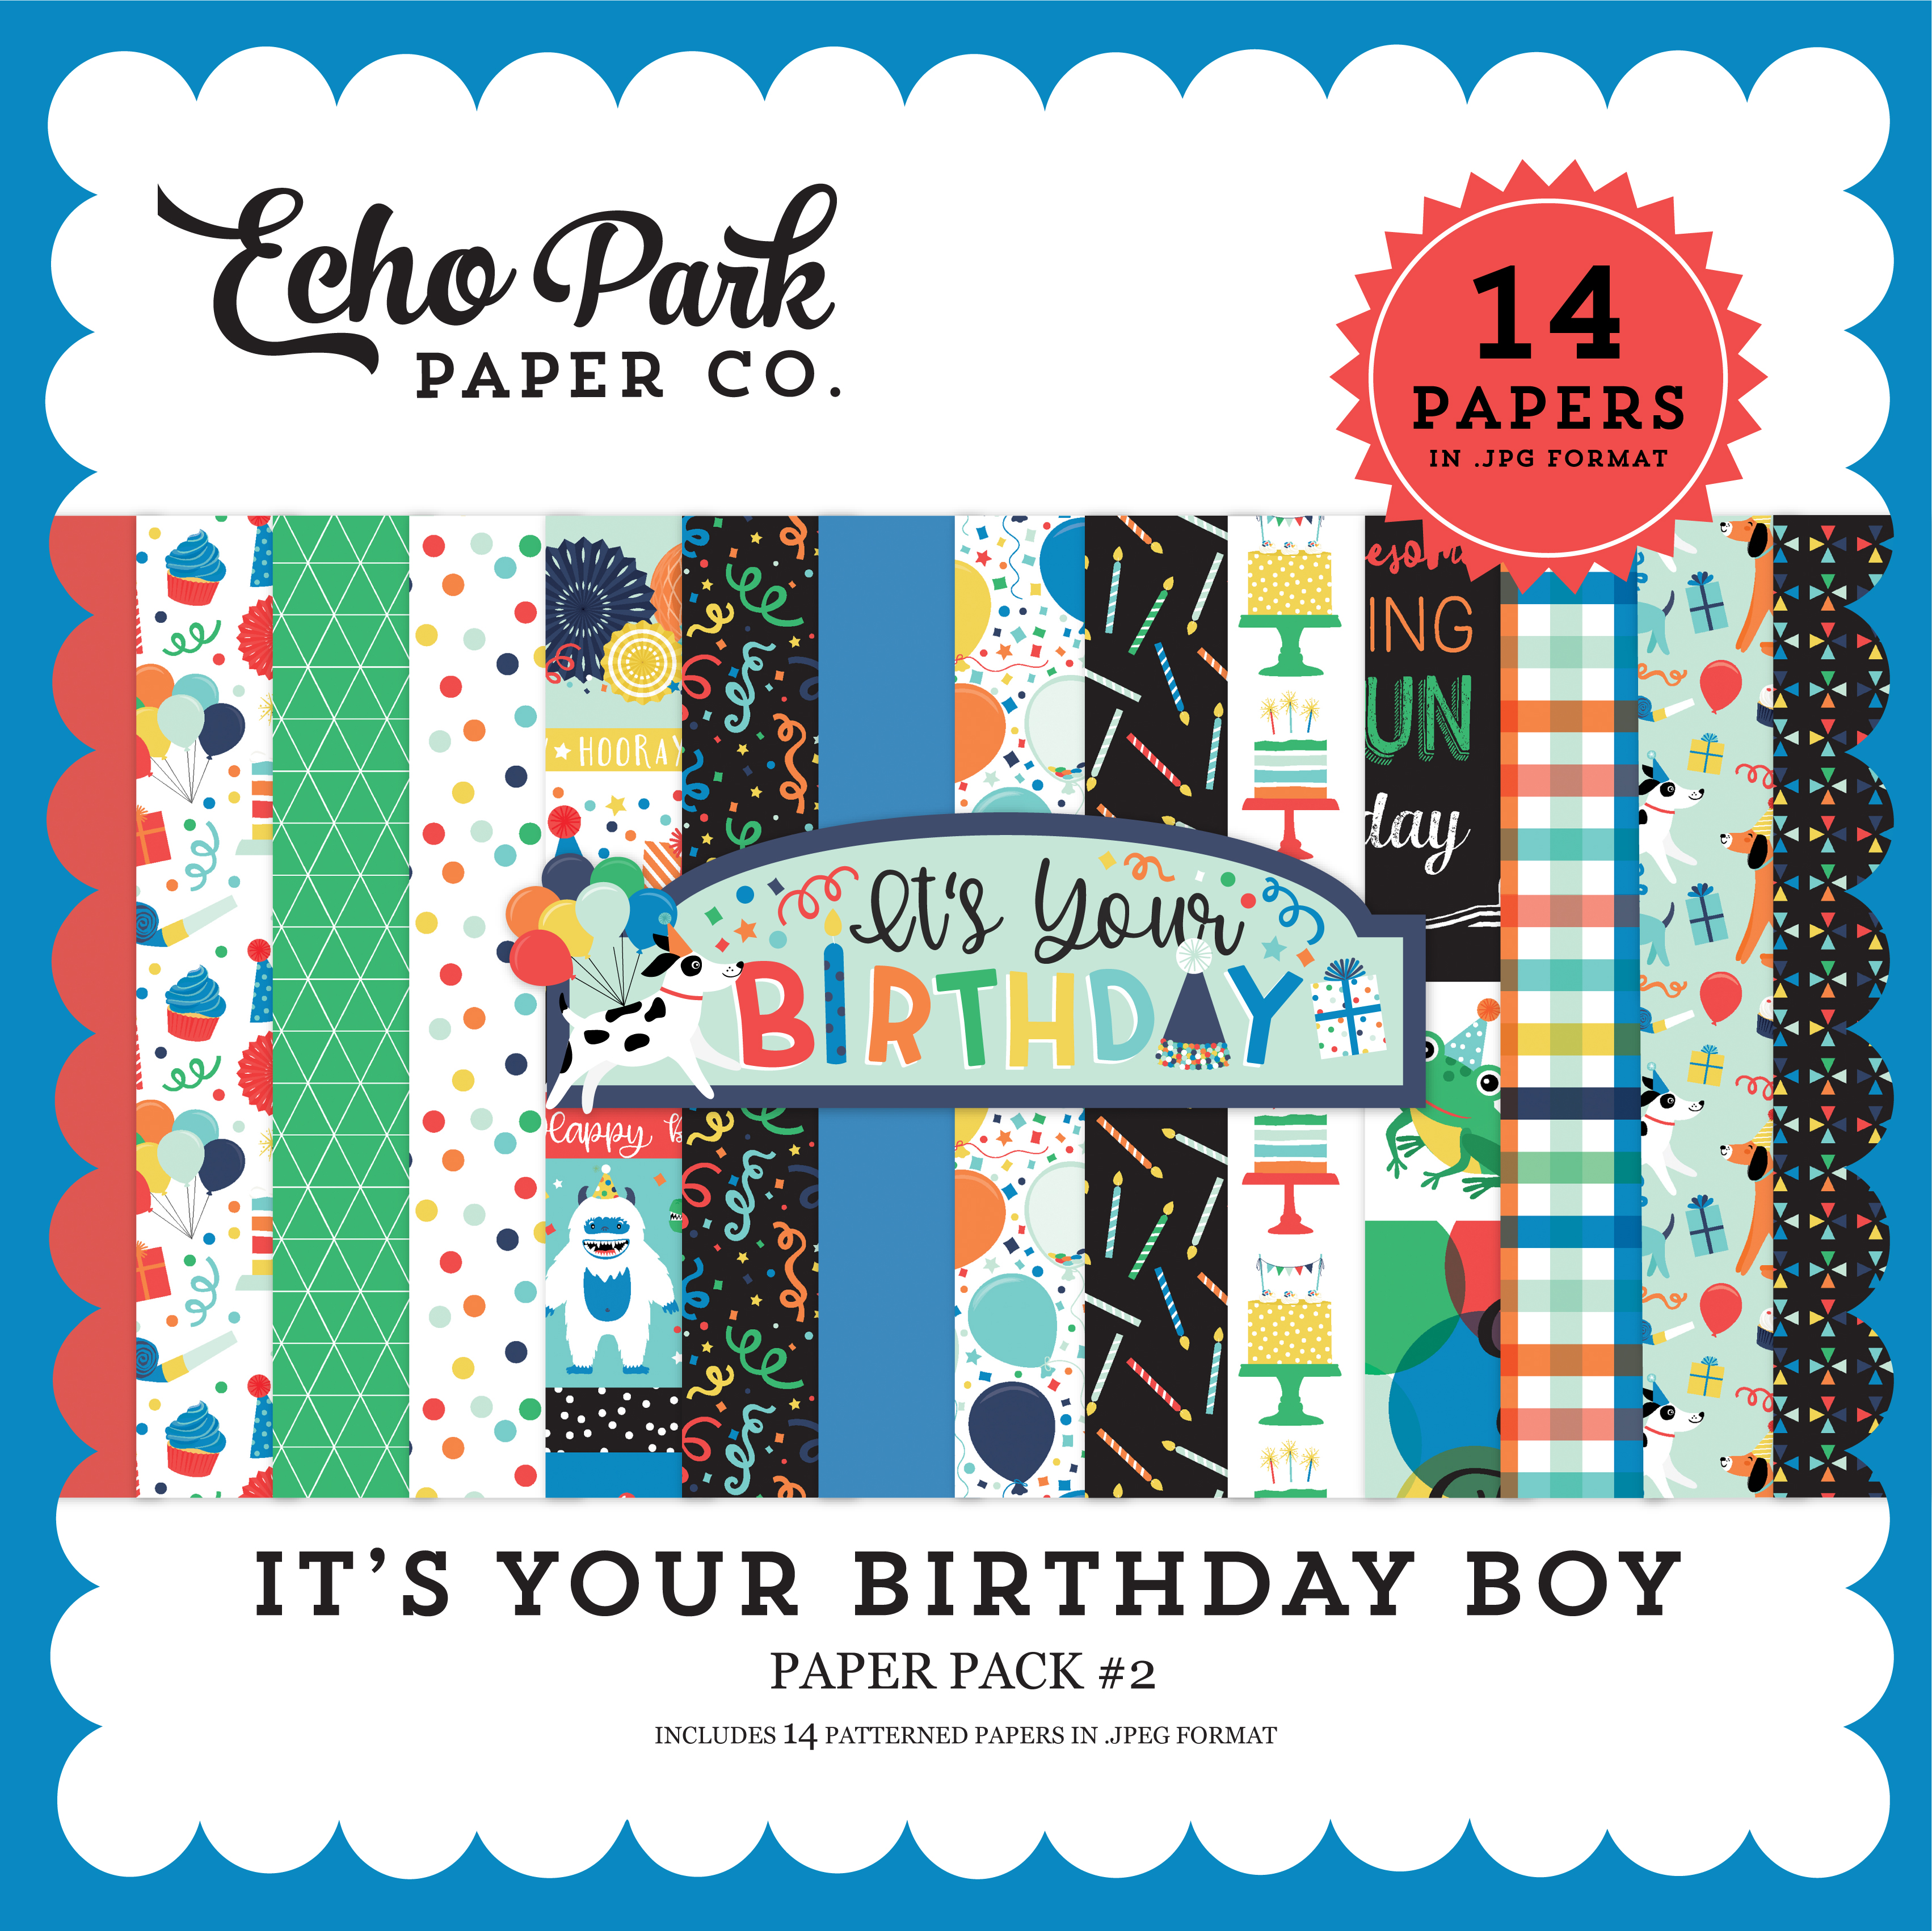 It's Your Birthday Boy Paper Pack #2